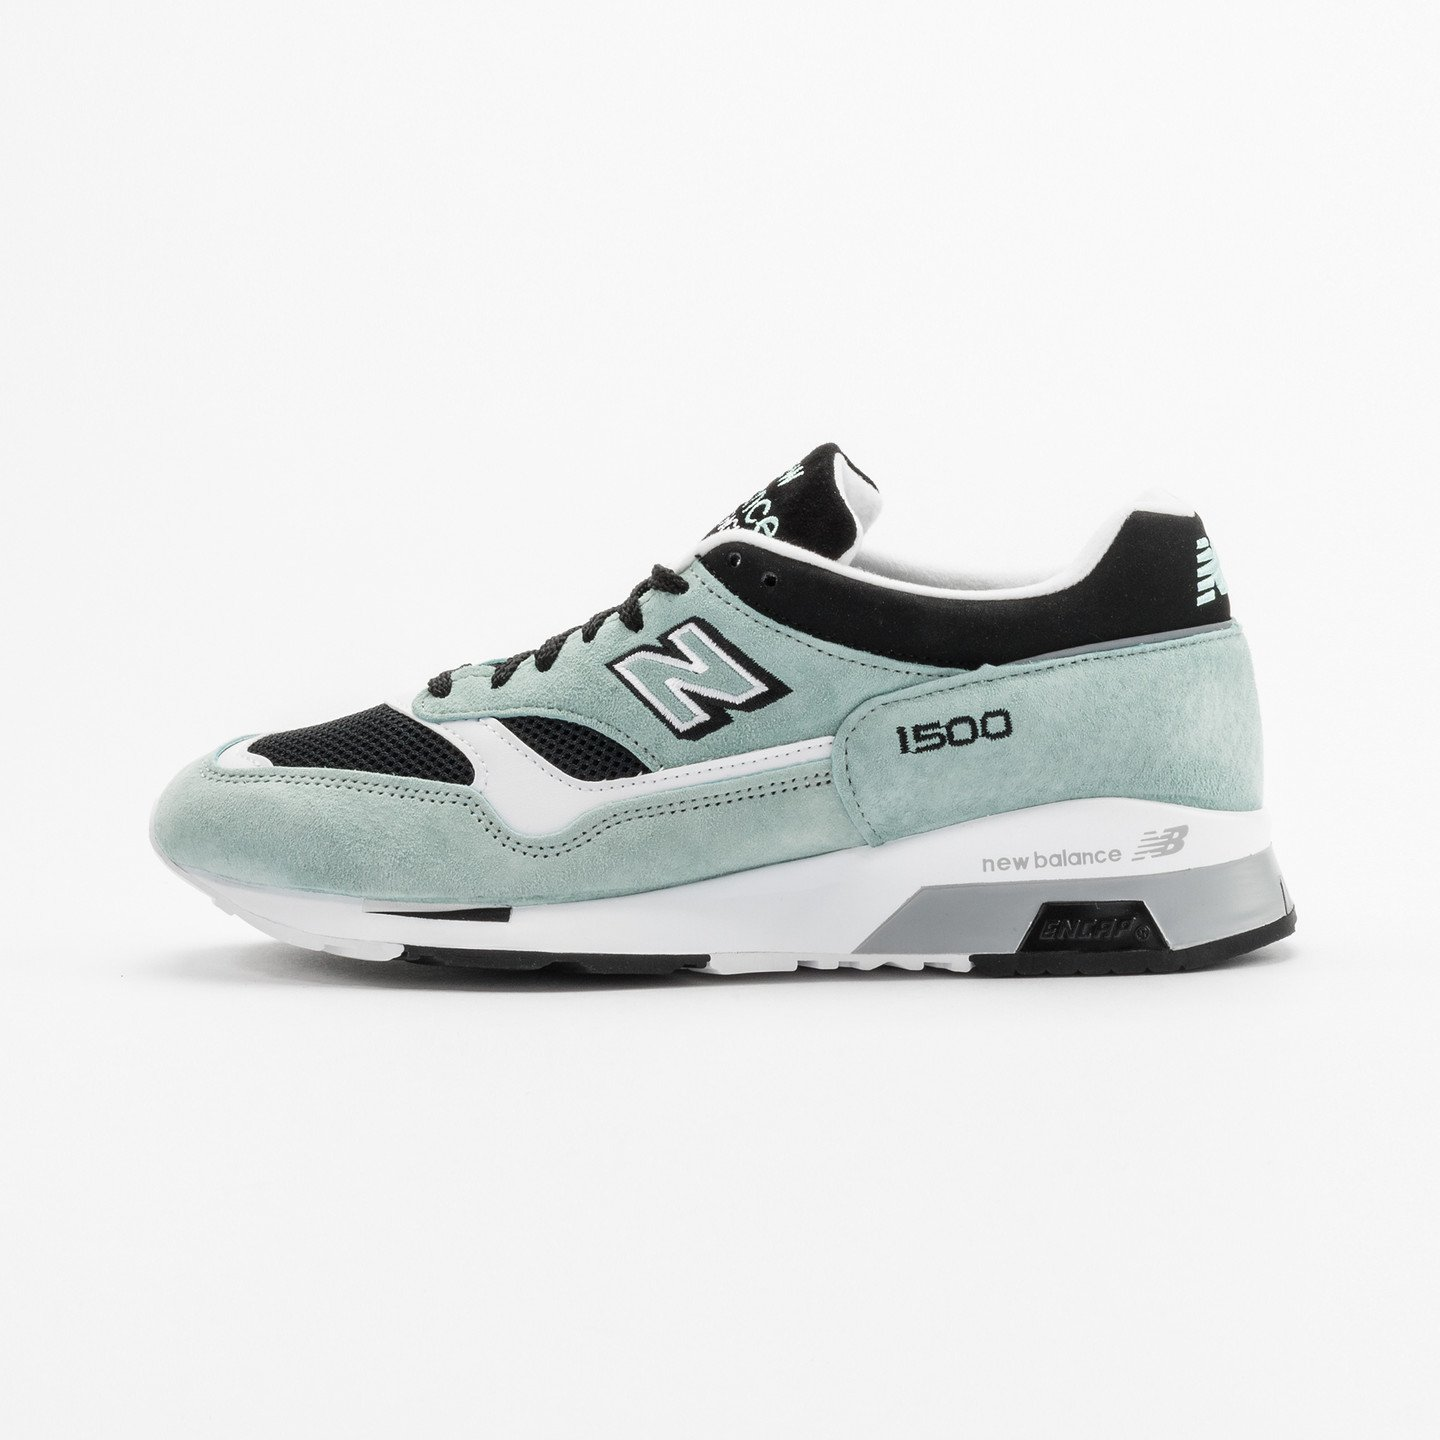 New Balance M1500 MGK - Made in England Mint / Black / White M1500MGK-41.5